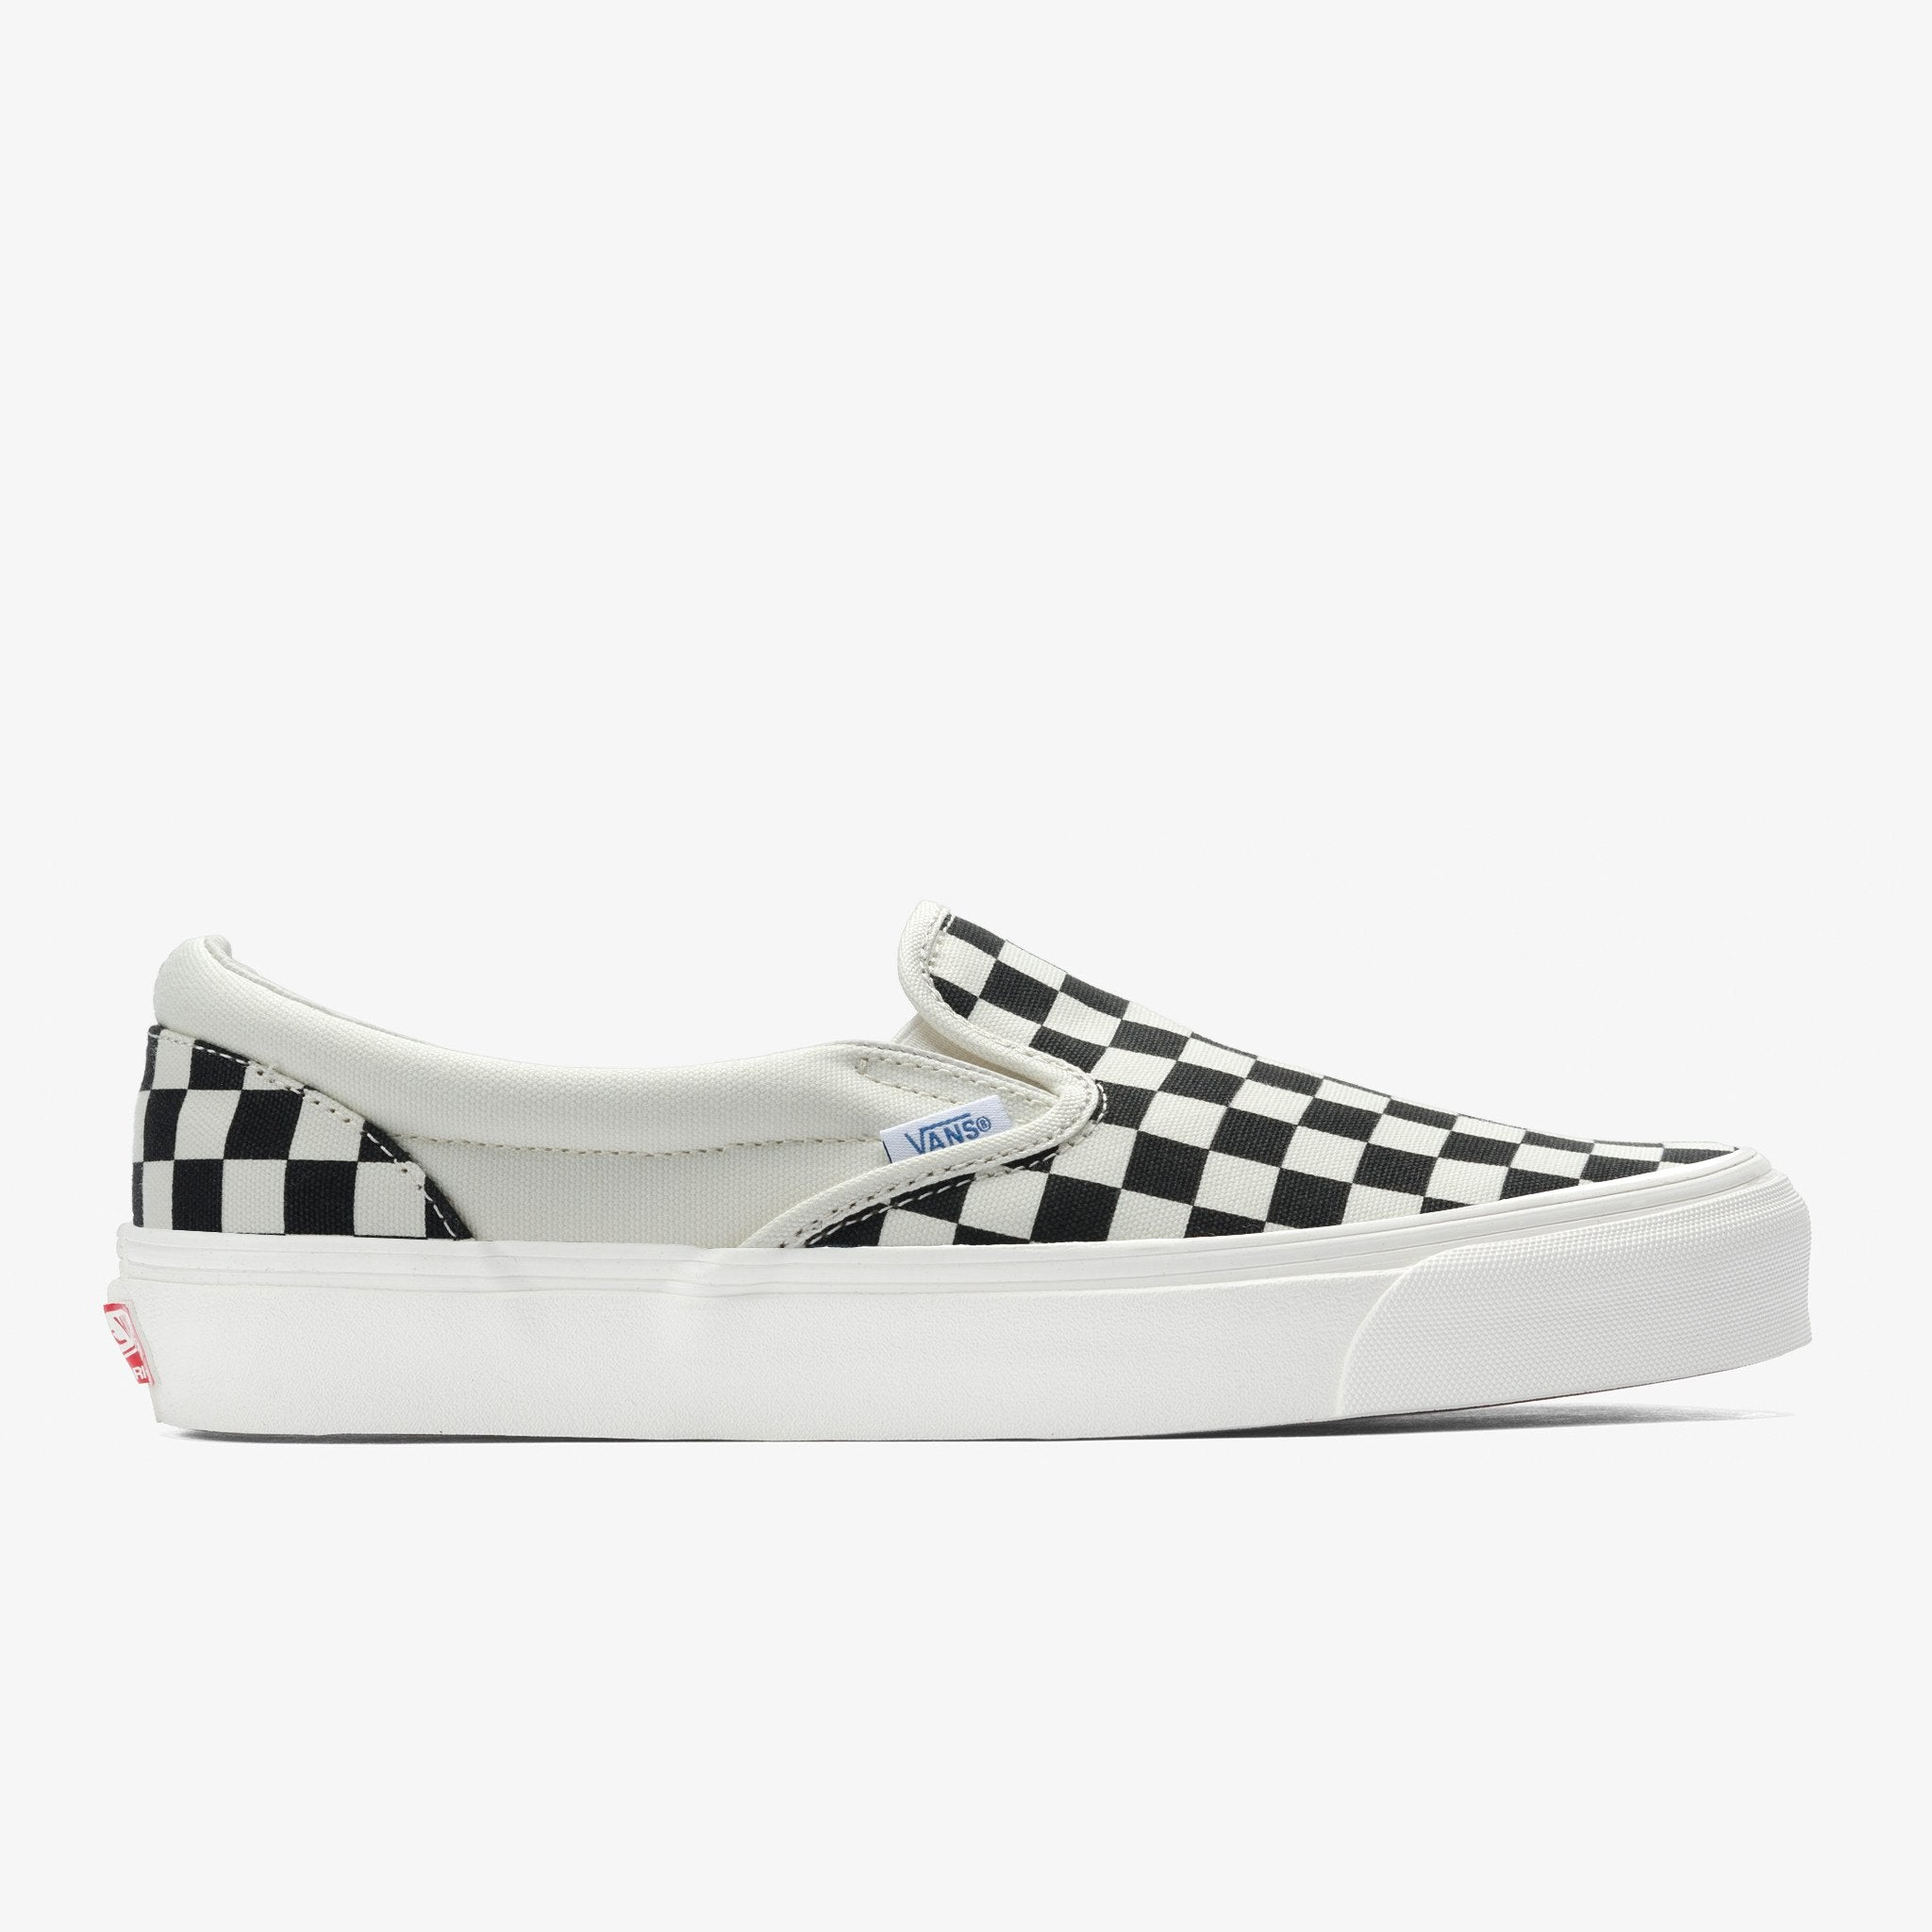 2c1948460ea Vans Unisex Checkerboard Slip On Black Off White - Foot Paths Shoes